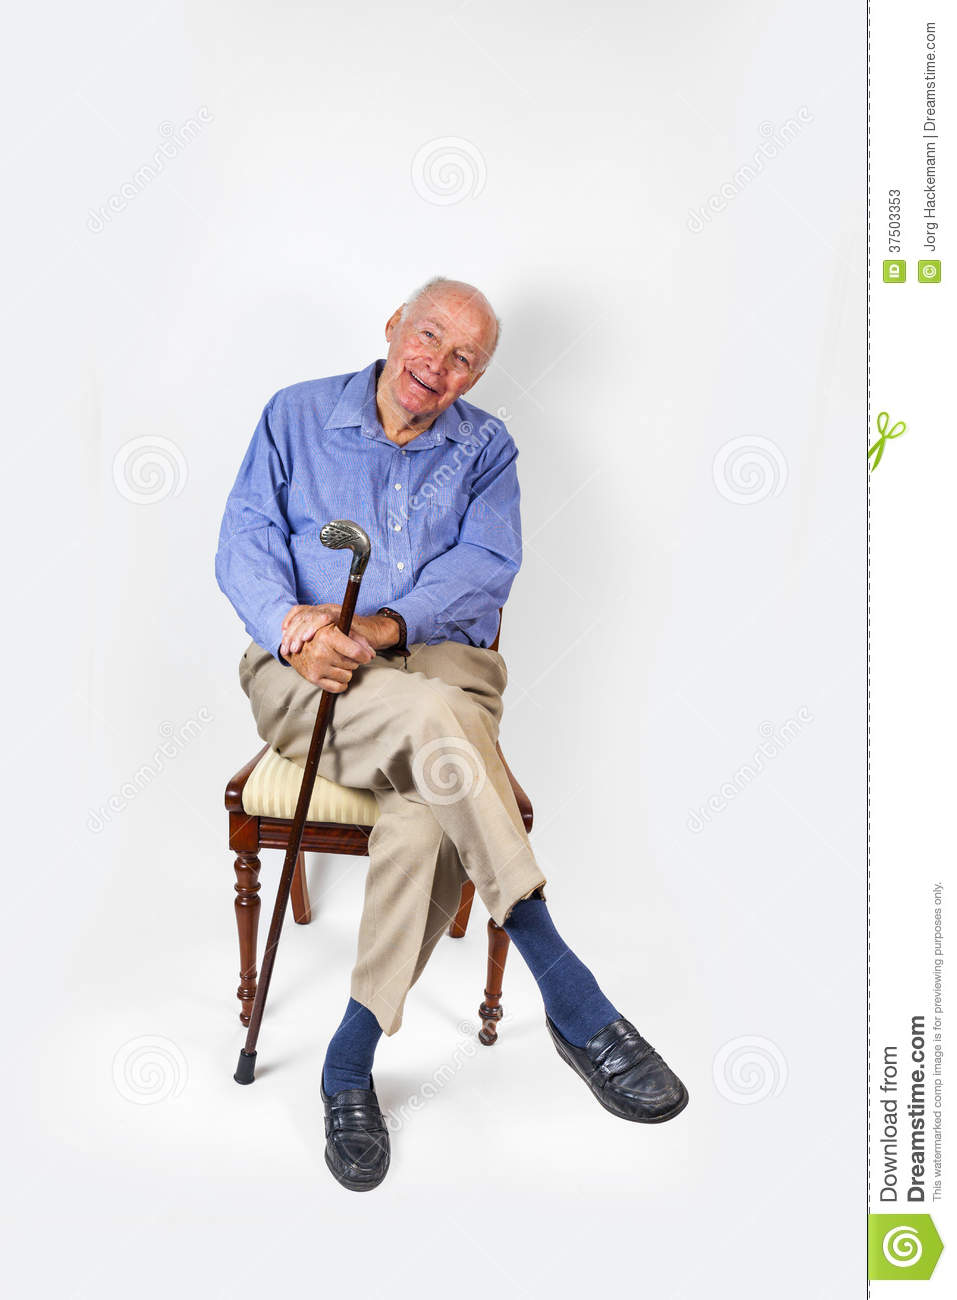 people sitting on chairs png. royalty-free stock photo people sitting on chairs png